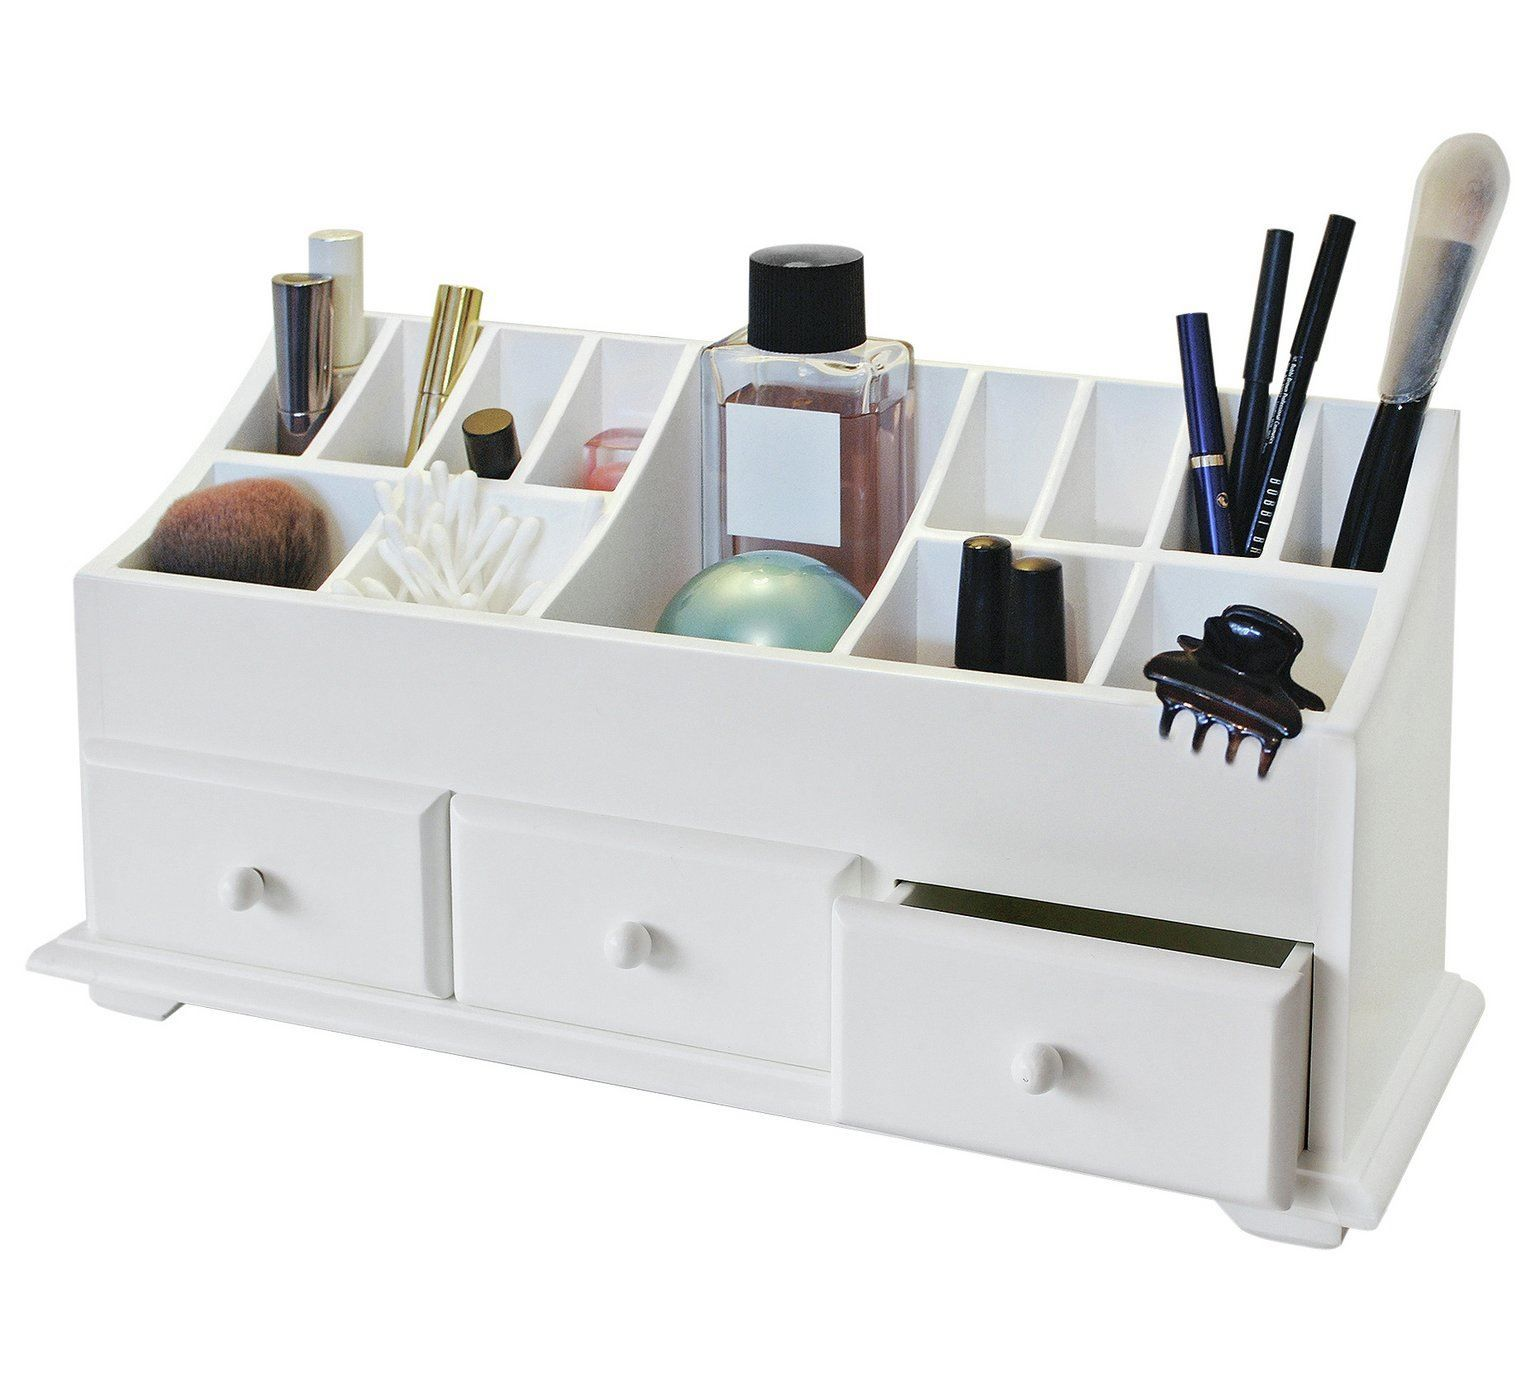 53 Reference Of Desk Organiser Drawers Argos In 2020 Cosmetics Caddy Desk Organization Drawers